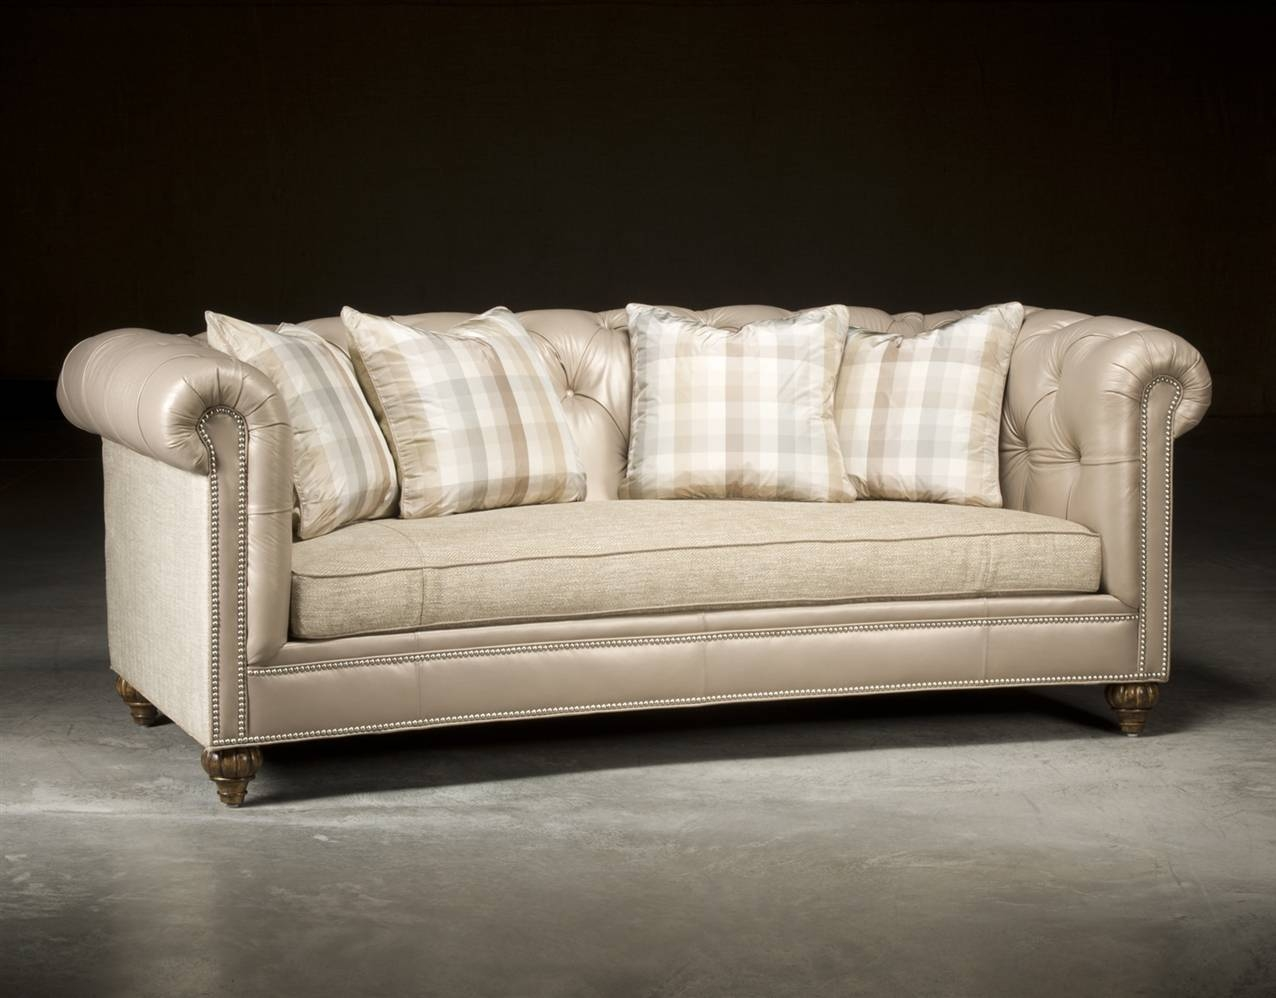 Chesterfield Tufted Sofa, High End Upholstered Furniture throughout High End Sofa (Image 4 of 30)